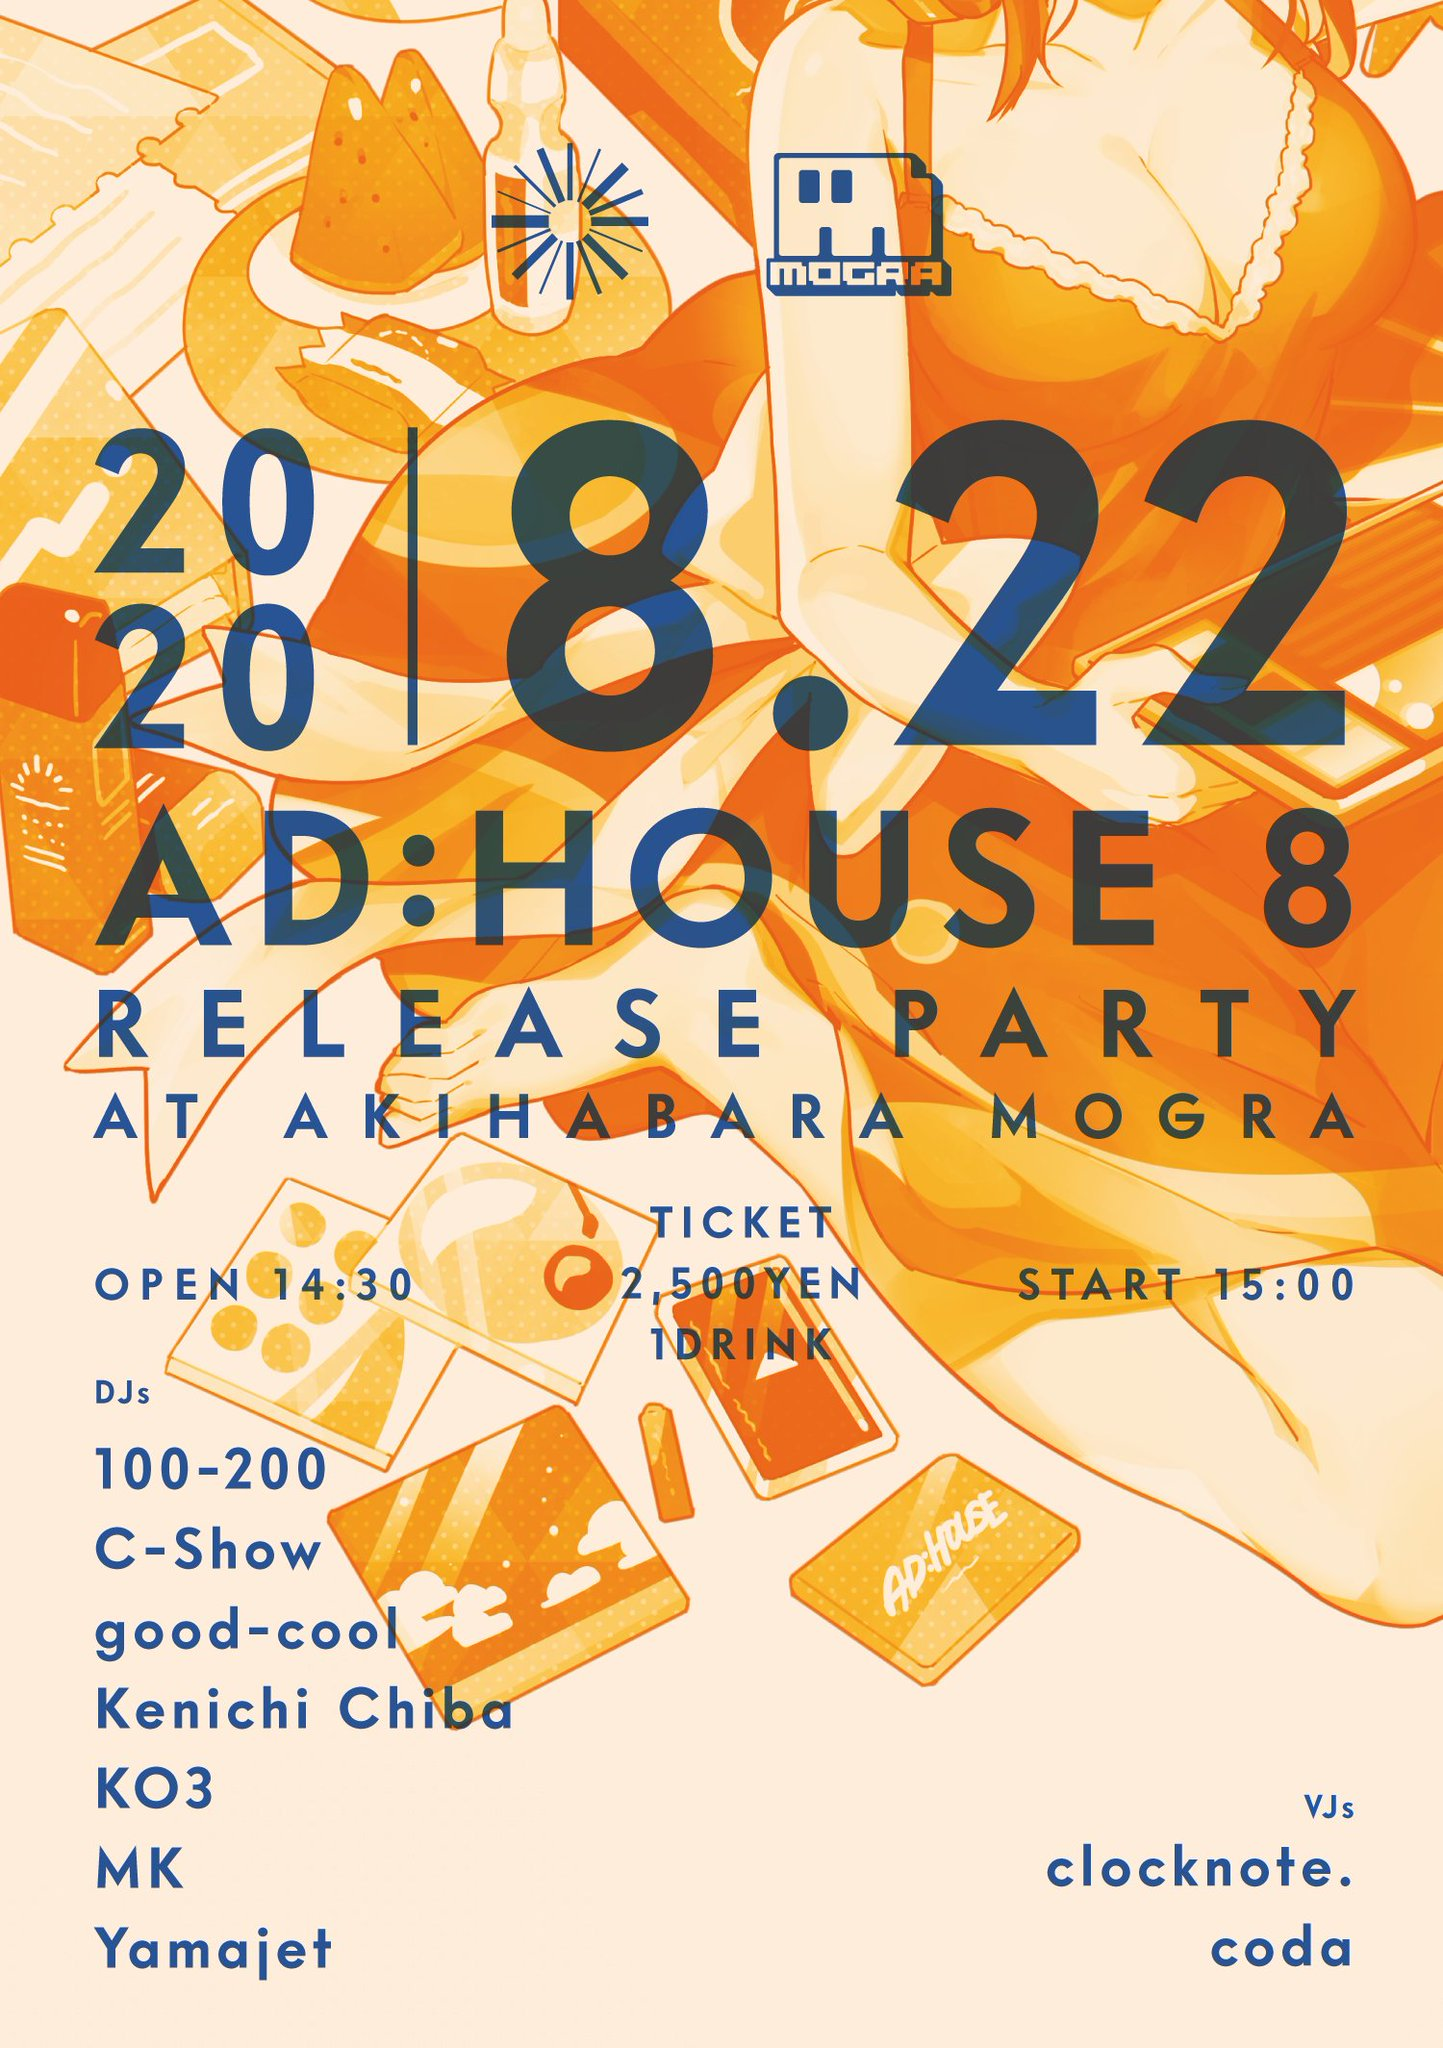 AD:HOUSE 8 Release Party